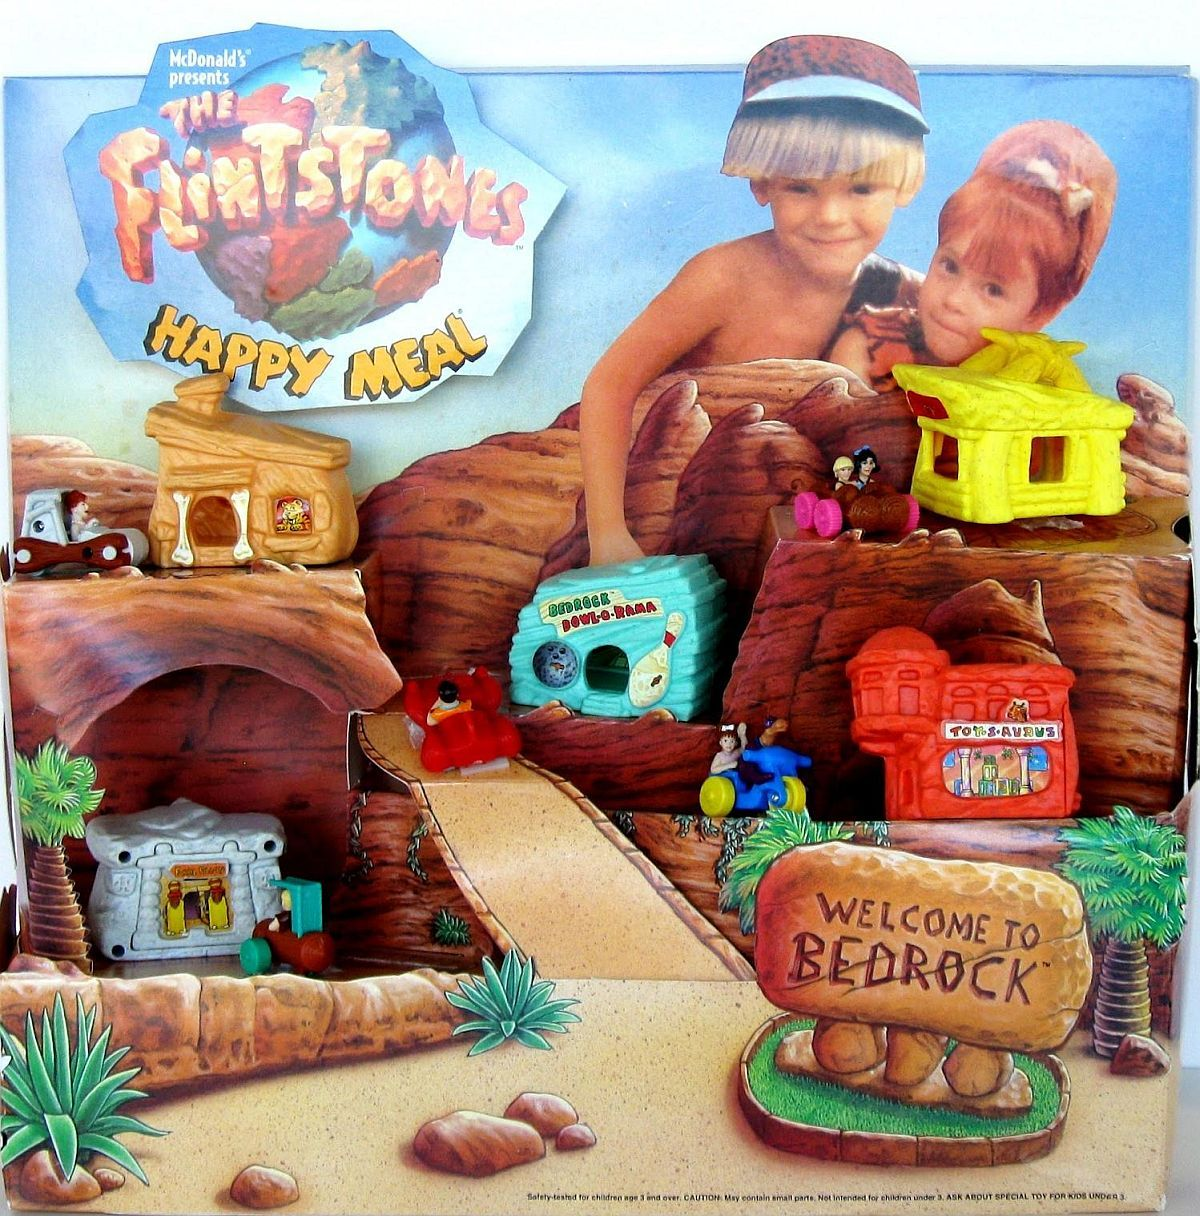 Image 4 of McDonalds The Flintstones Happy Meal toys 4 pieces of 1993 set